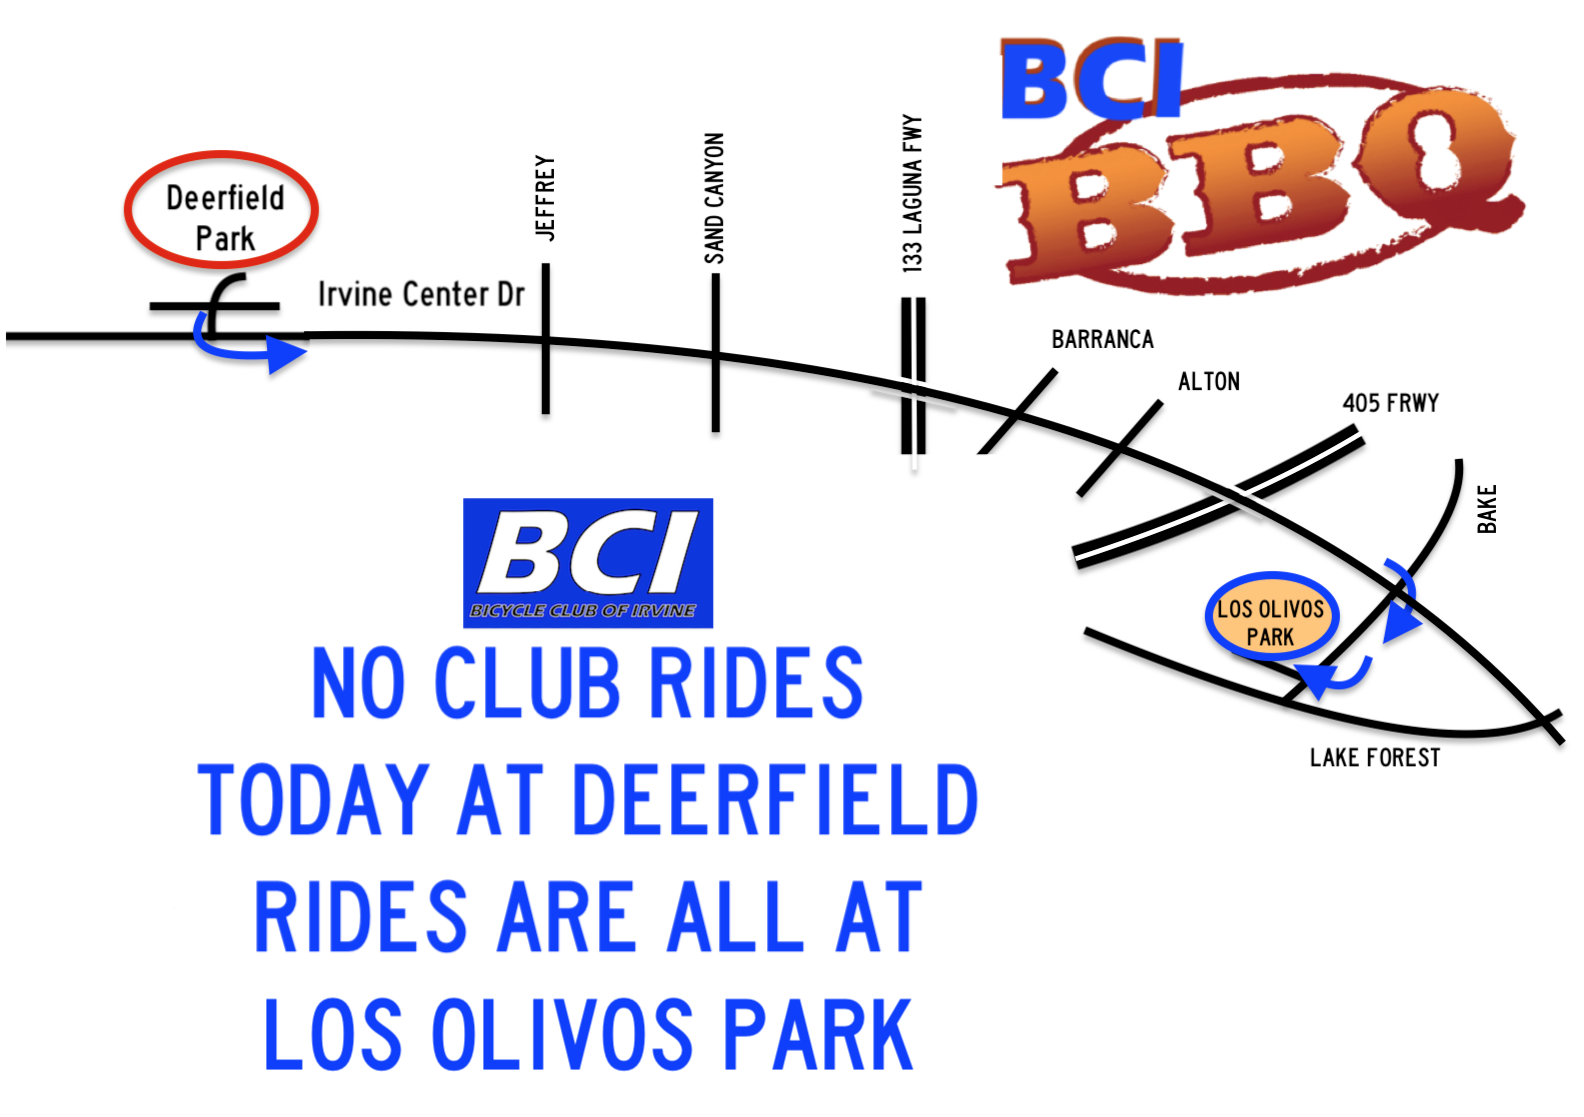 Map from Deerfield Park to Los Olivos Park (not to scale)